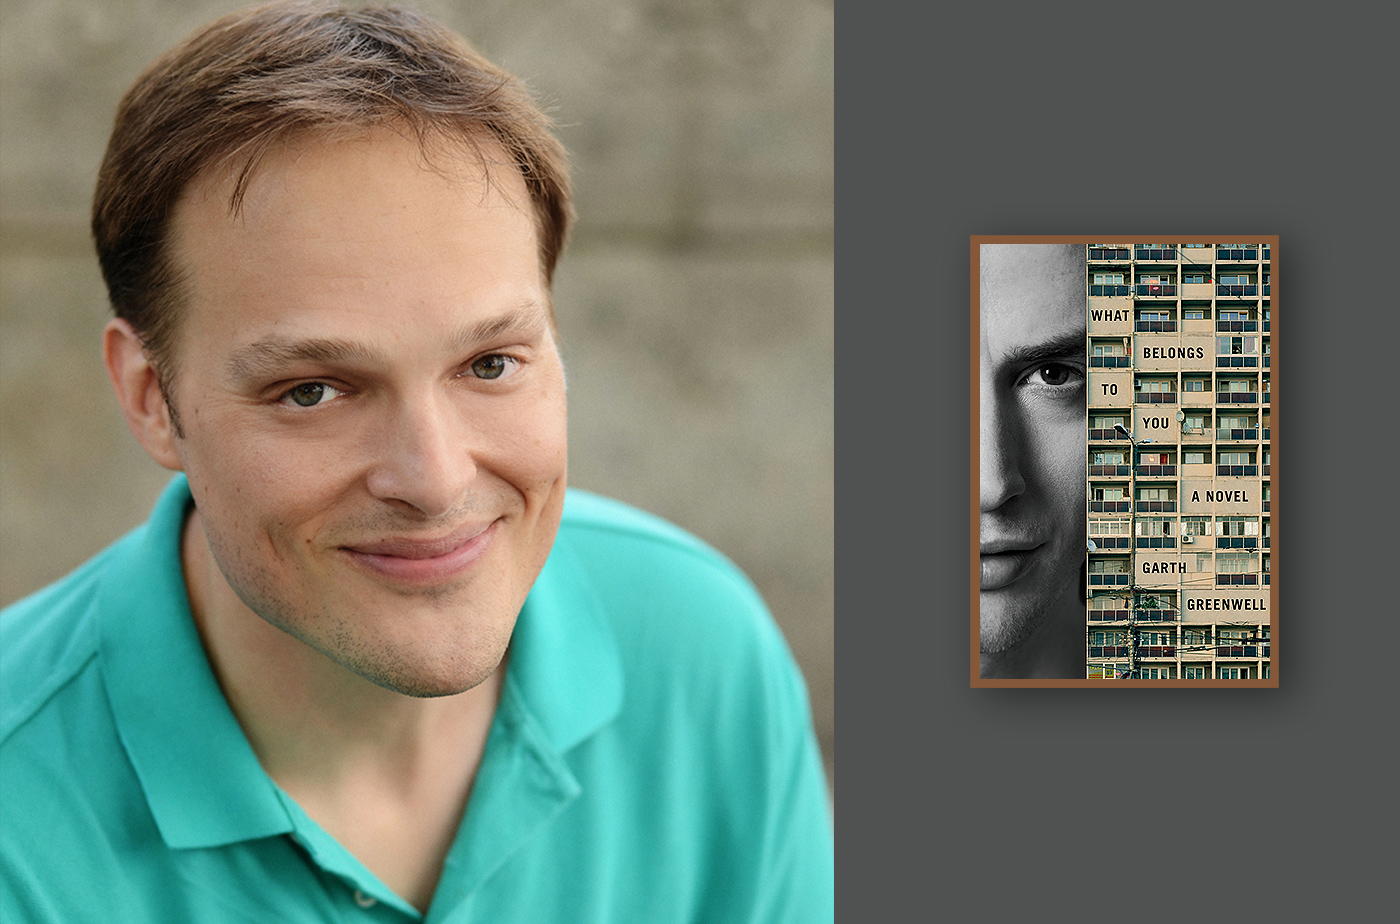 Catapult  classes: Garth  Greenwell, 4-Week Master Class with Garth Greenwell: Style in Fiction, Fiction, Master Class